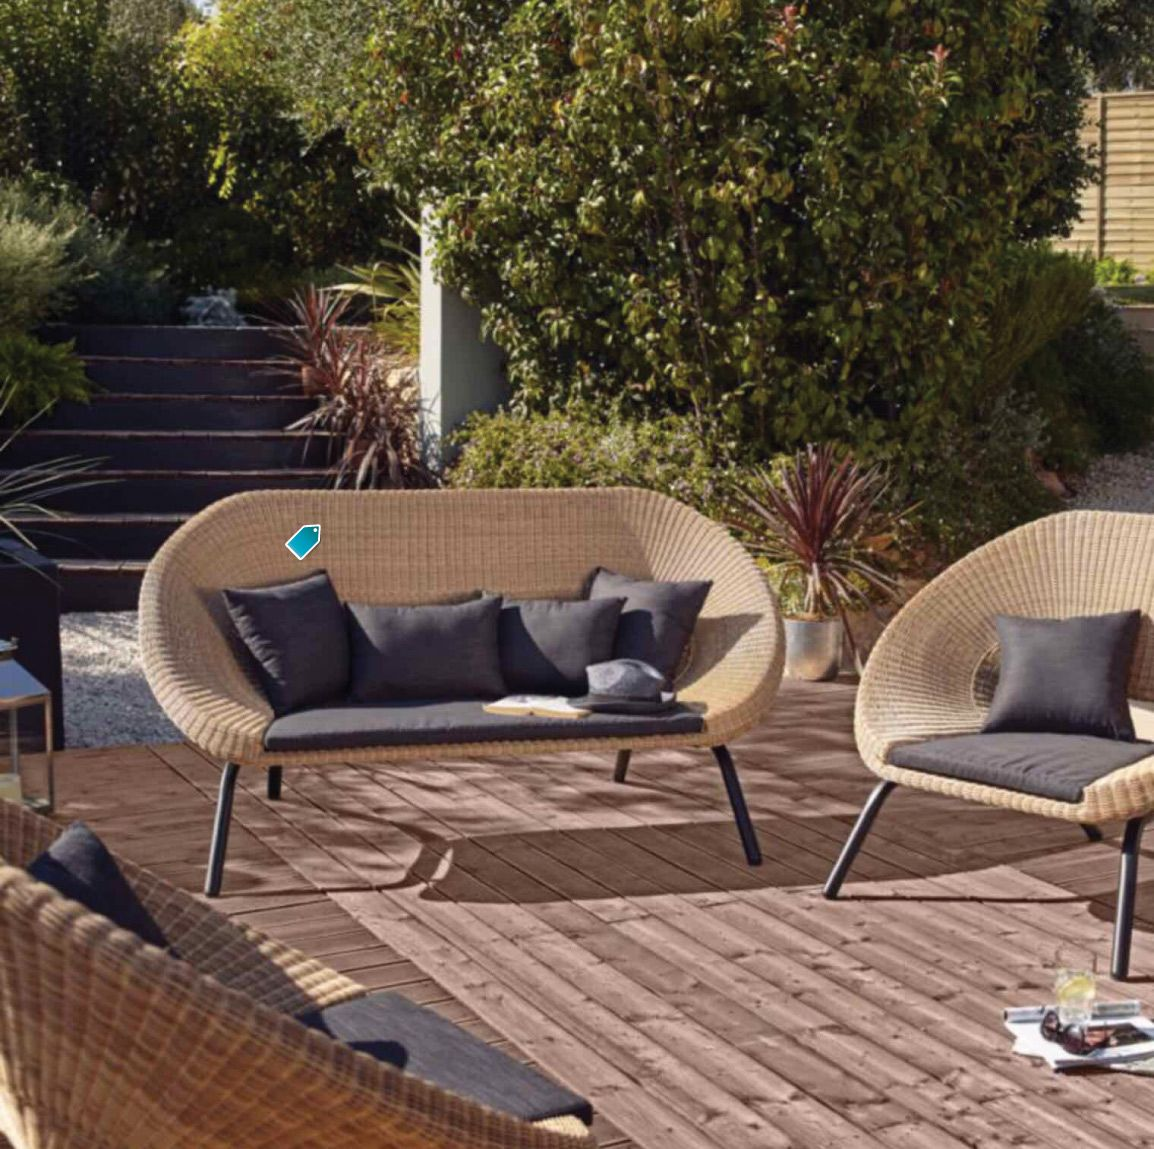 B&Q Loa Rattan 3 Seater Coffee Set. Picture courtesey of ...